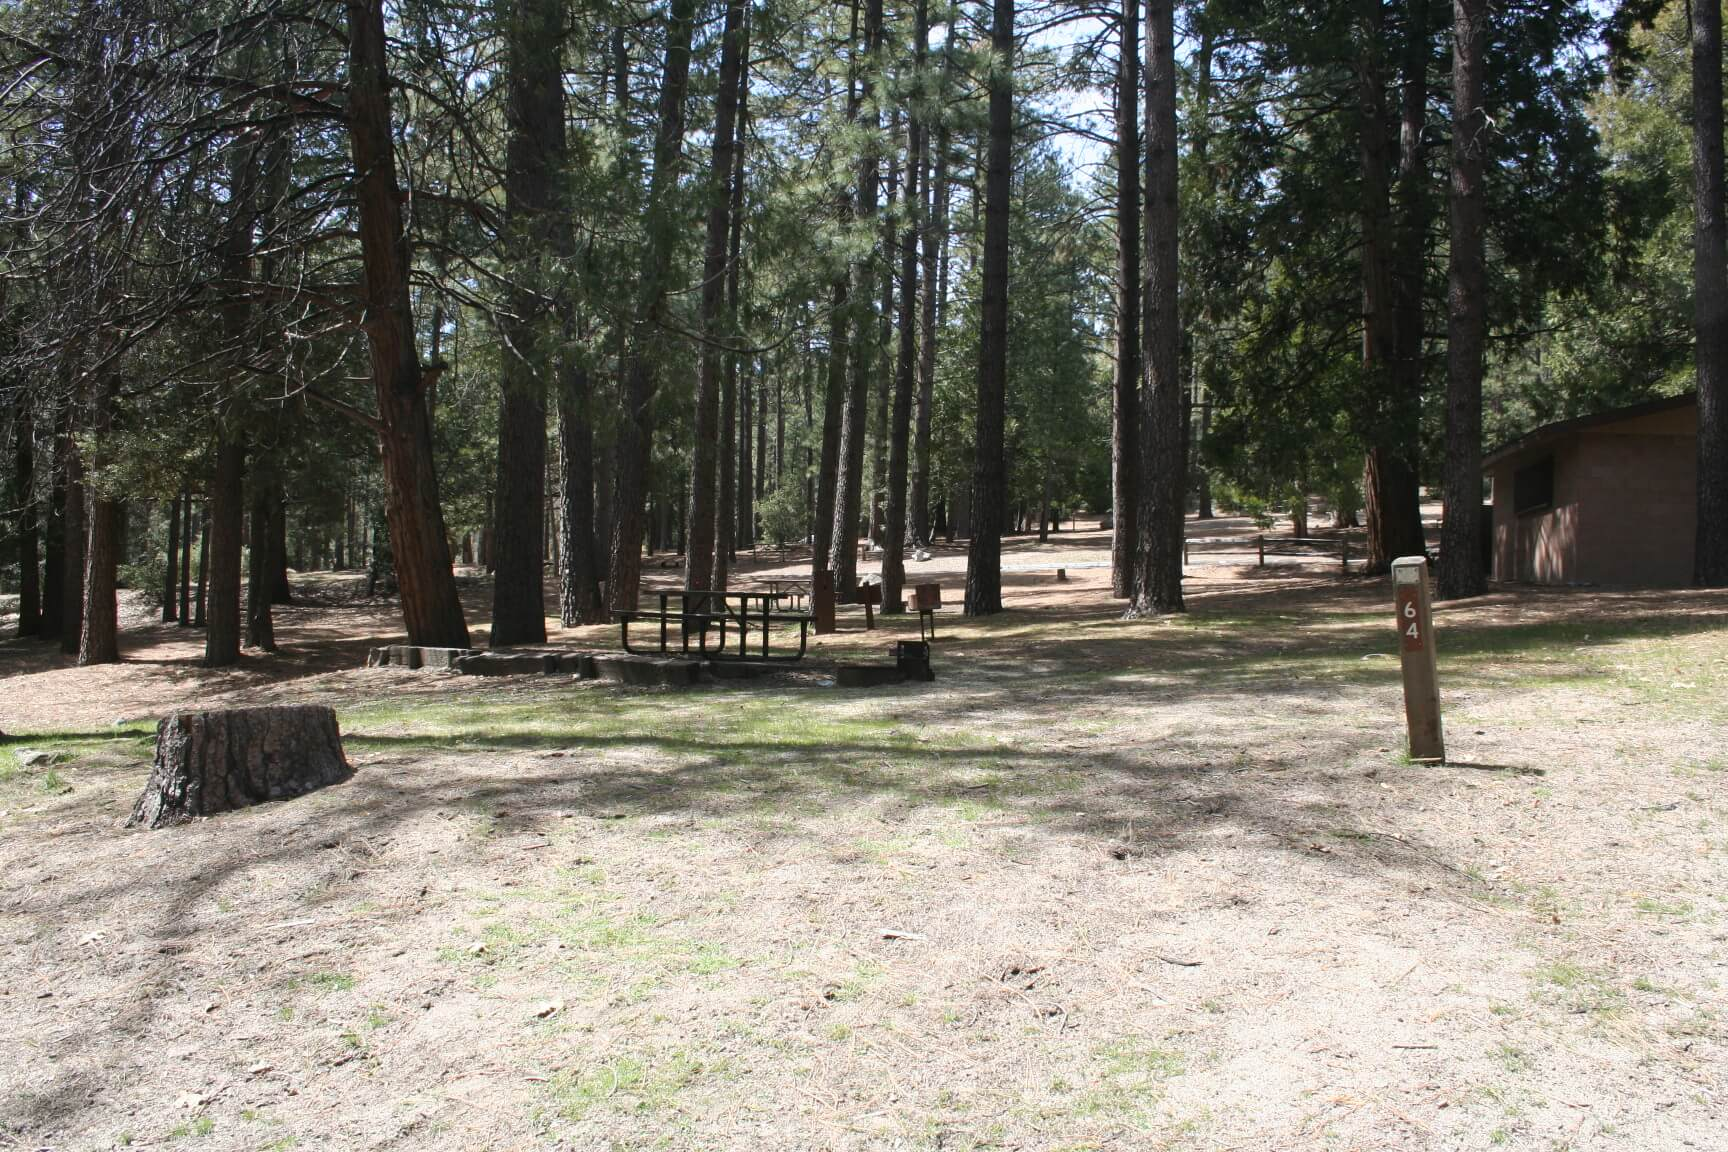 iverside County Parks Campgrounds_Idyllwild Park Campsite 64